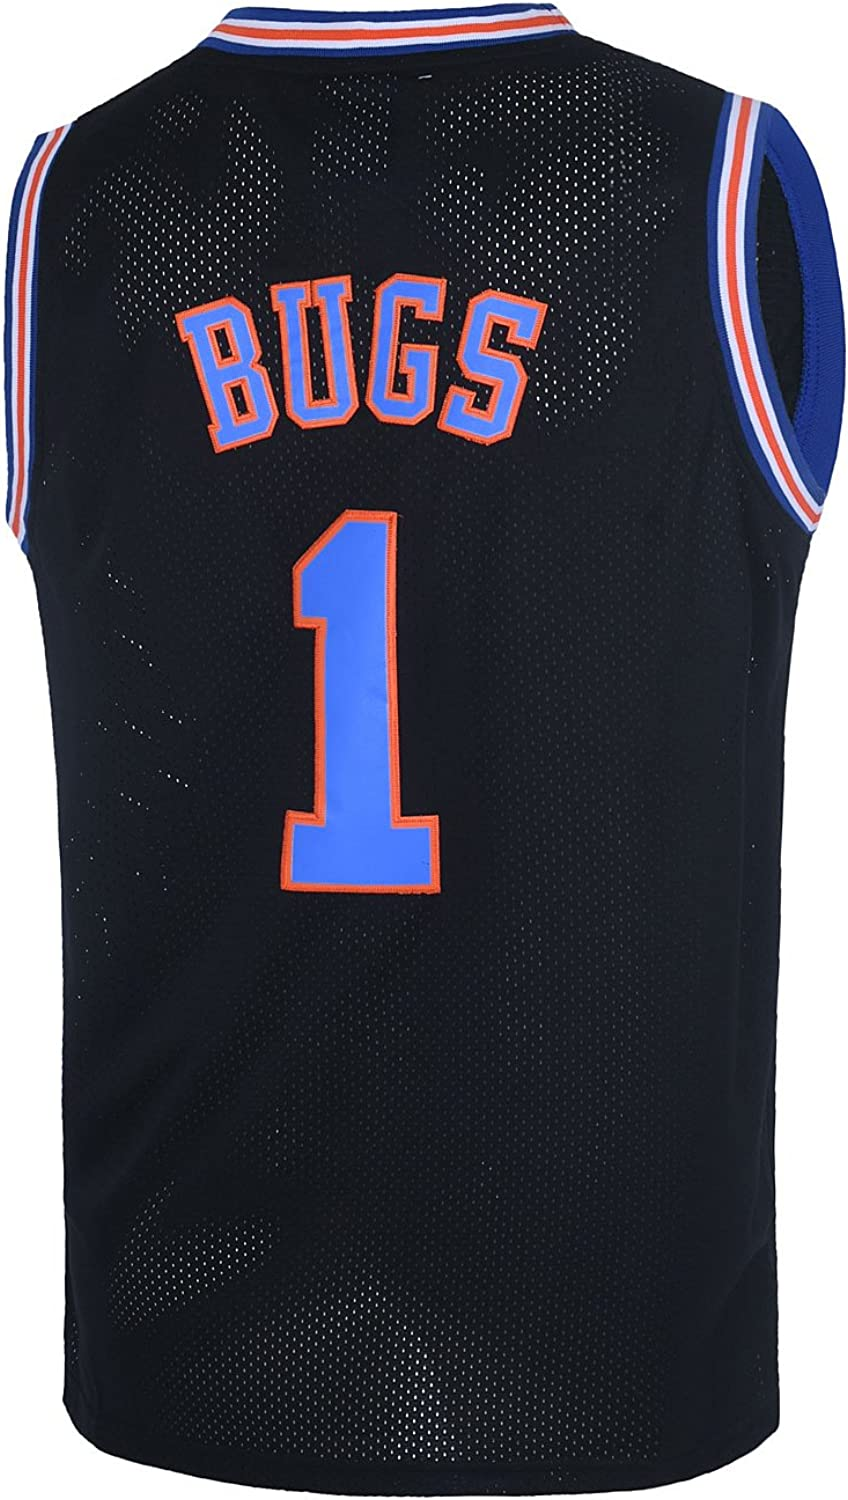 TUEIKGU Bugs 1 Space Men's Movie Jersey Basketball Jersey 90S Hip Hop Clothing for Party S-XXXL White/Black/Blue/Red